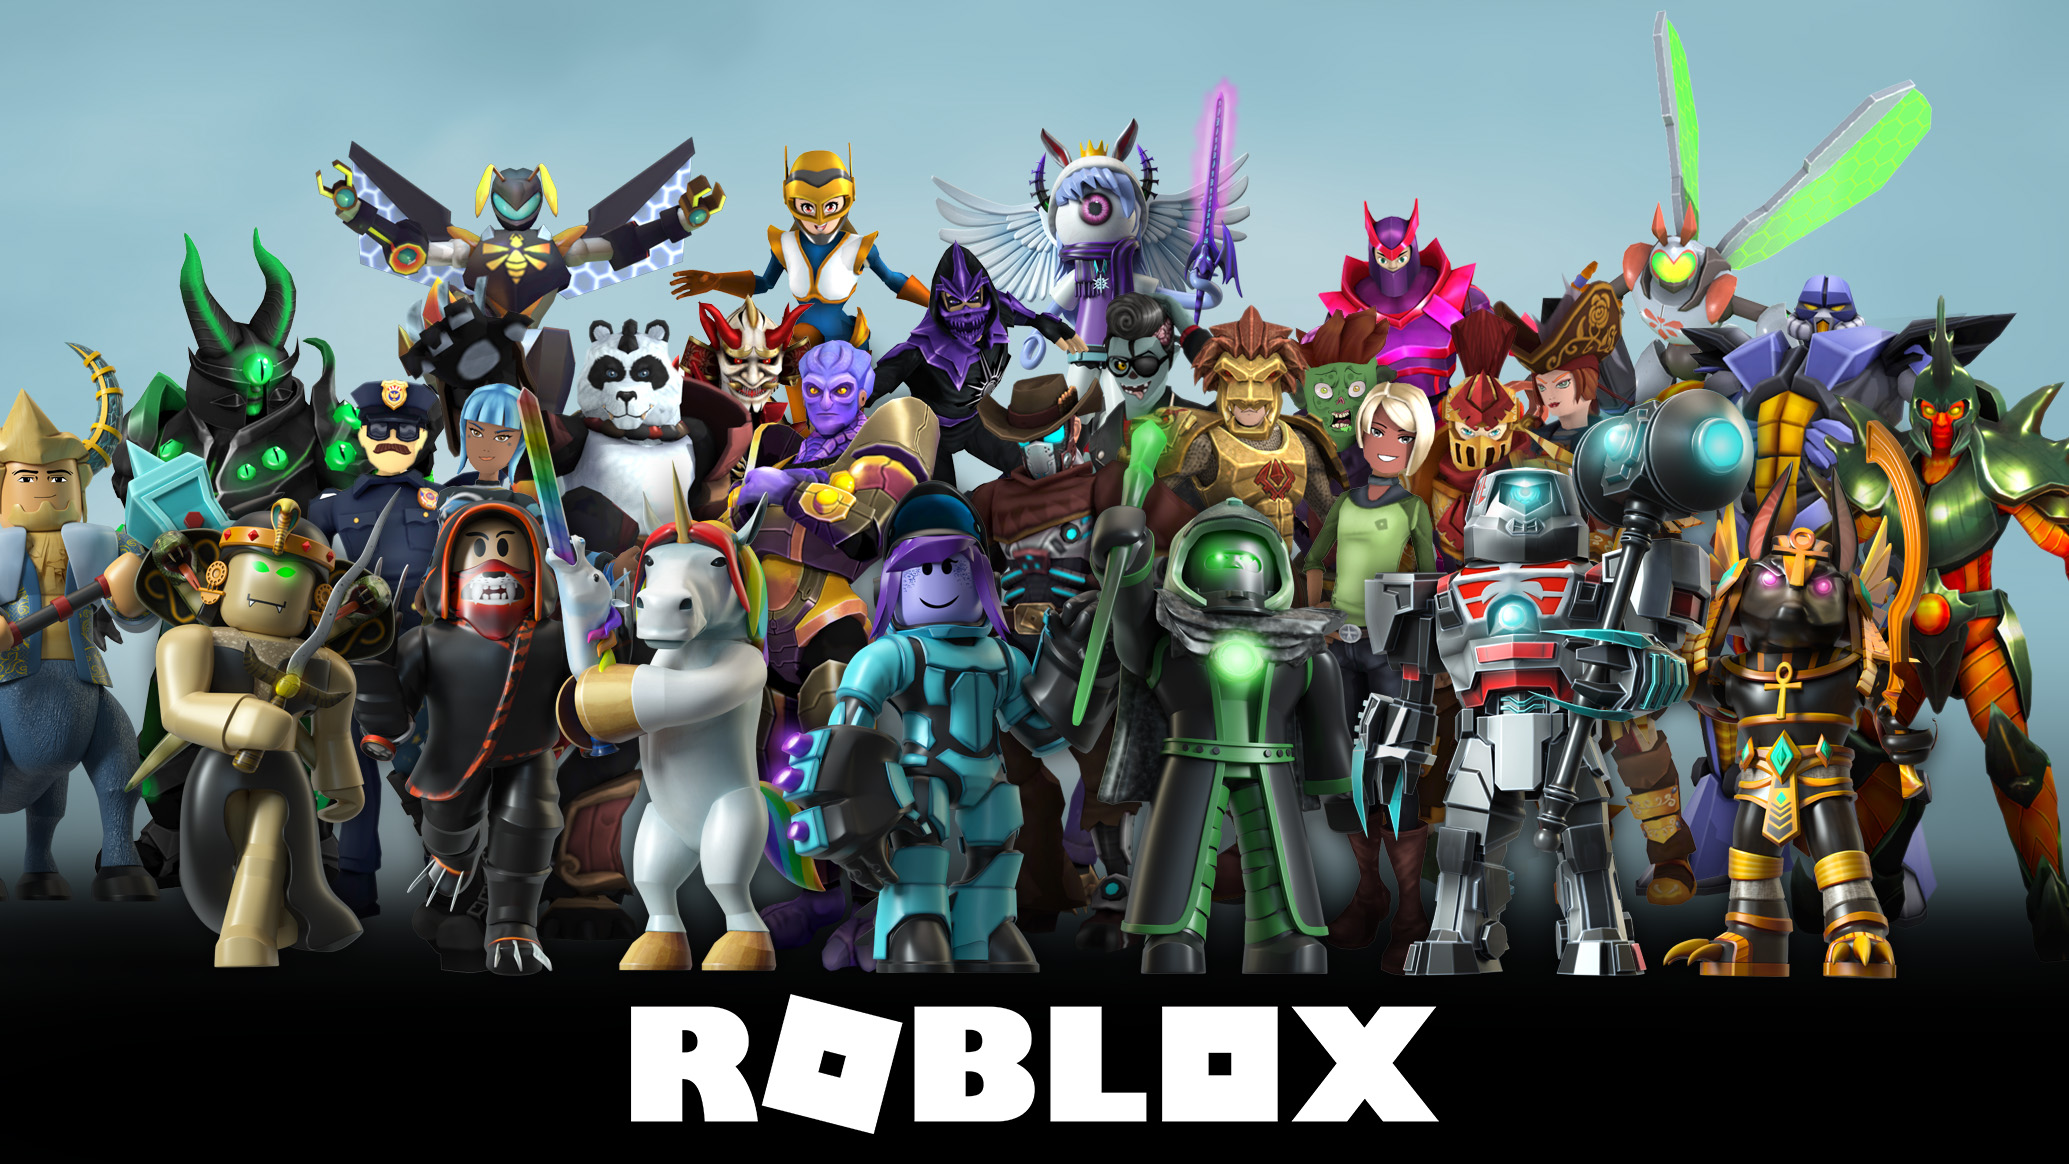 How To Put Two Hairs On Roblox Mobile Android Roblox Jumps To Over 150m Monthly Users Will Pay Out 250m To Developers In 2020 Techcrunch